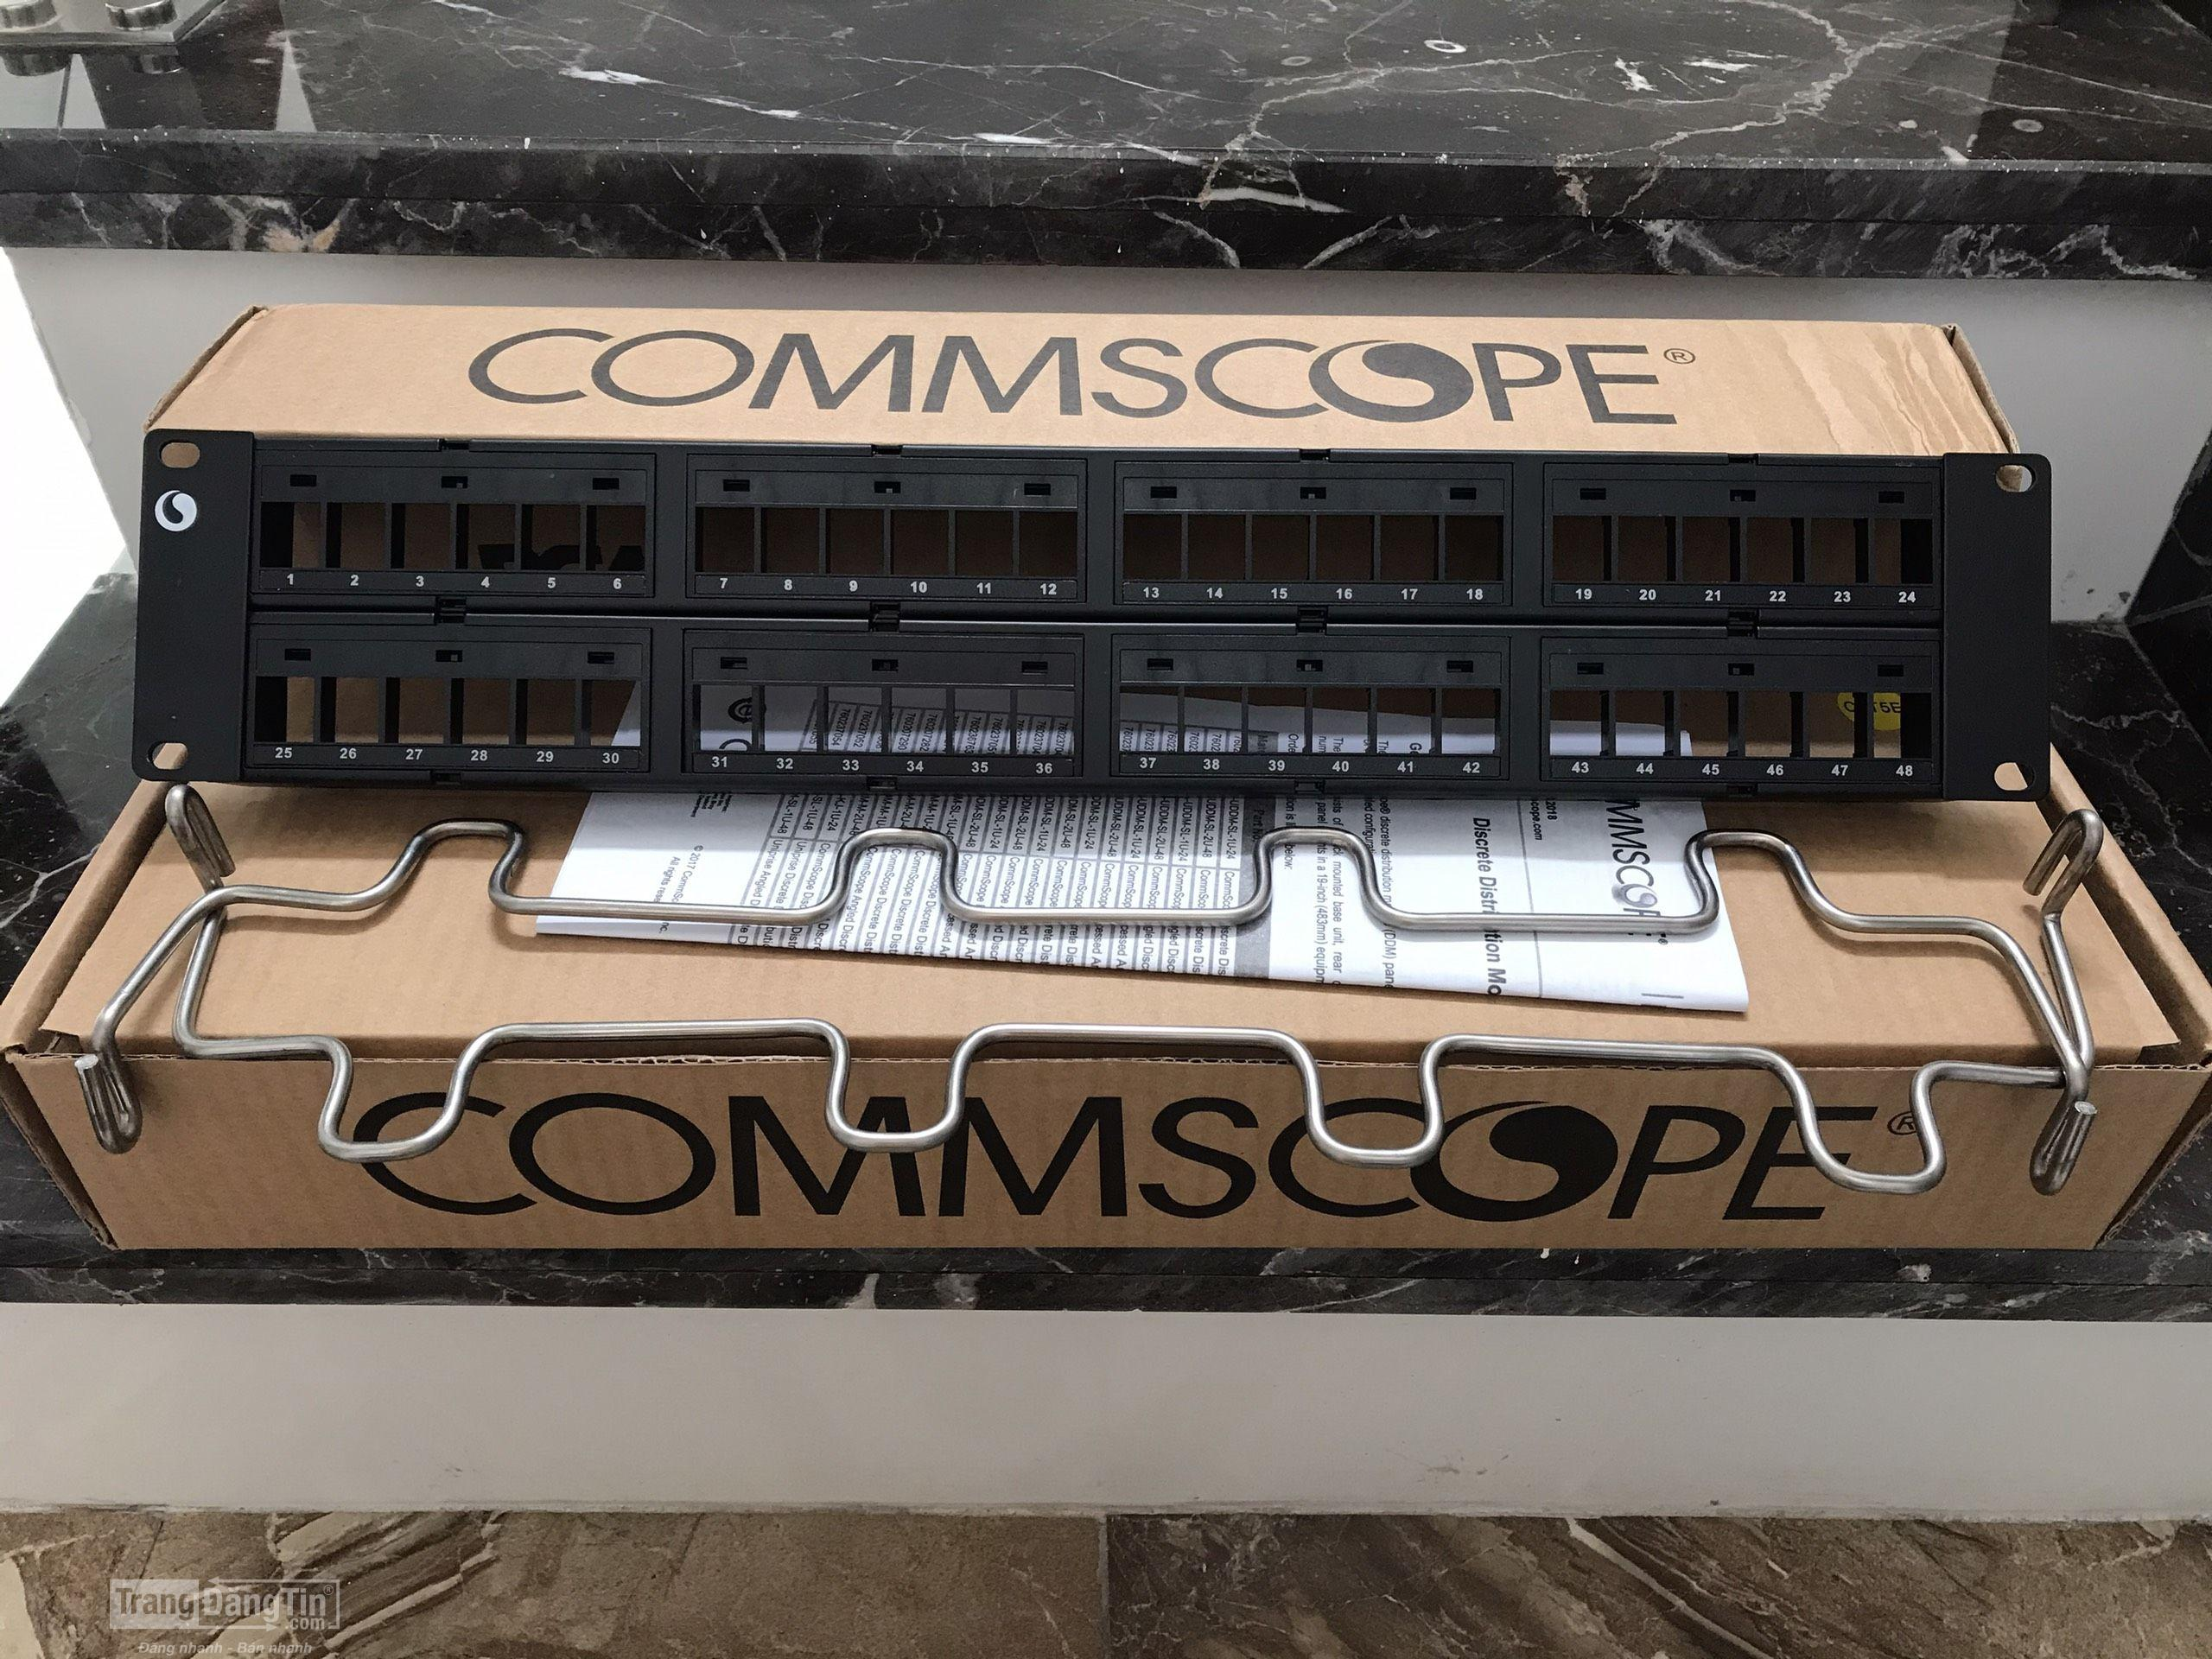 Thanh nối Patch panel COMMSCOPE 48 cổng Cat5/Cat6 gắn Rack